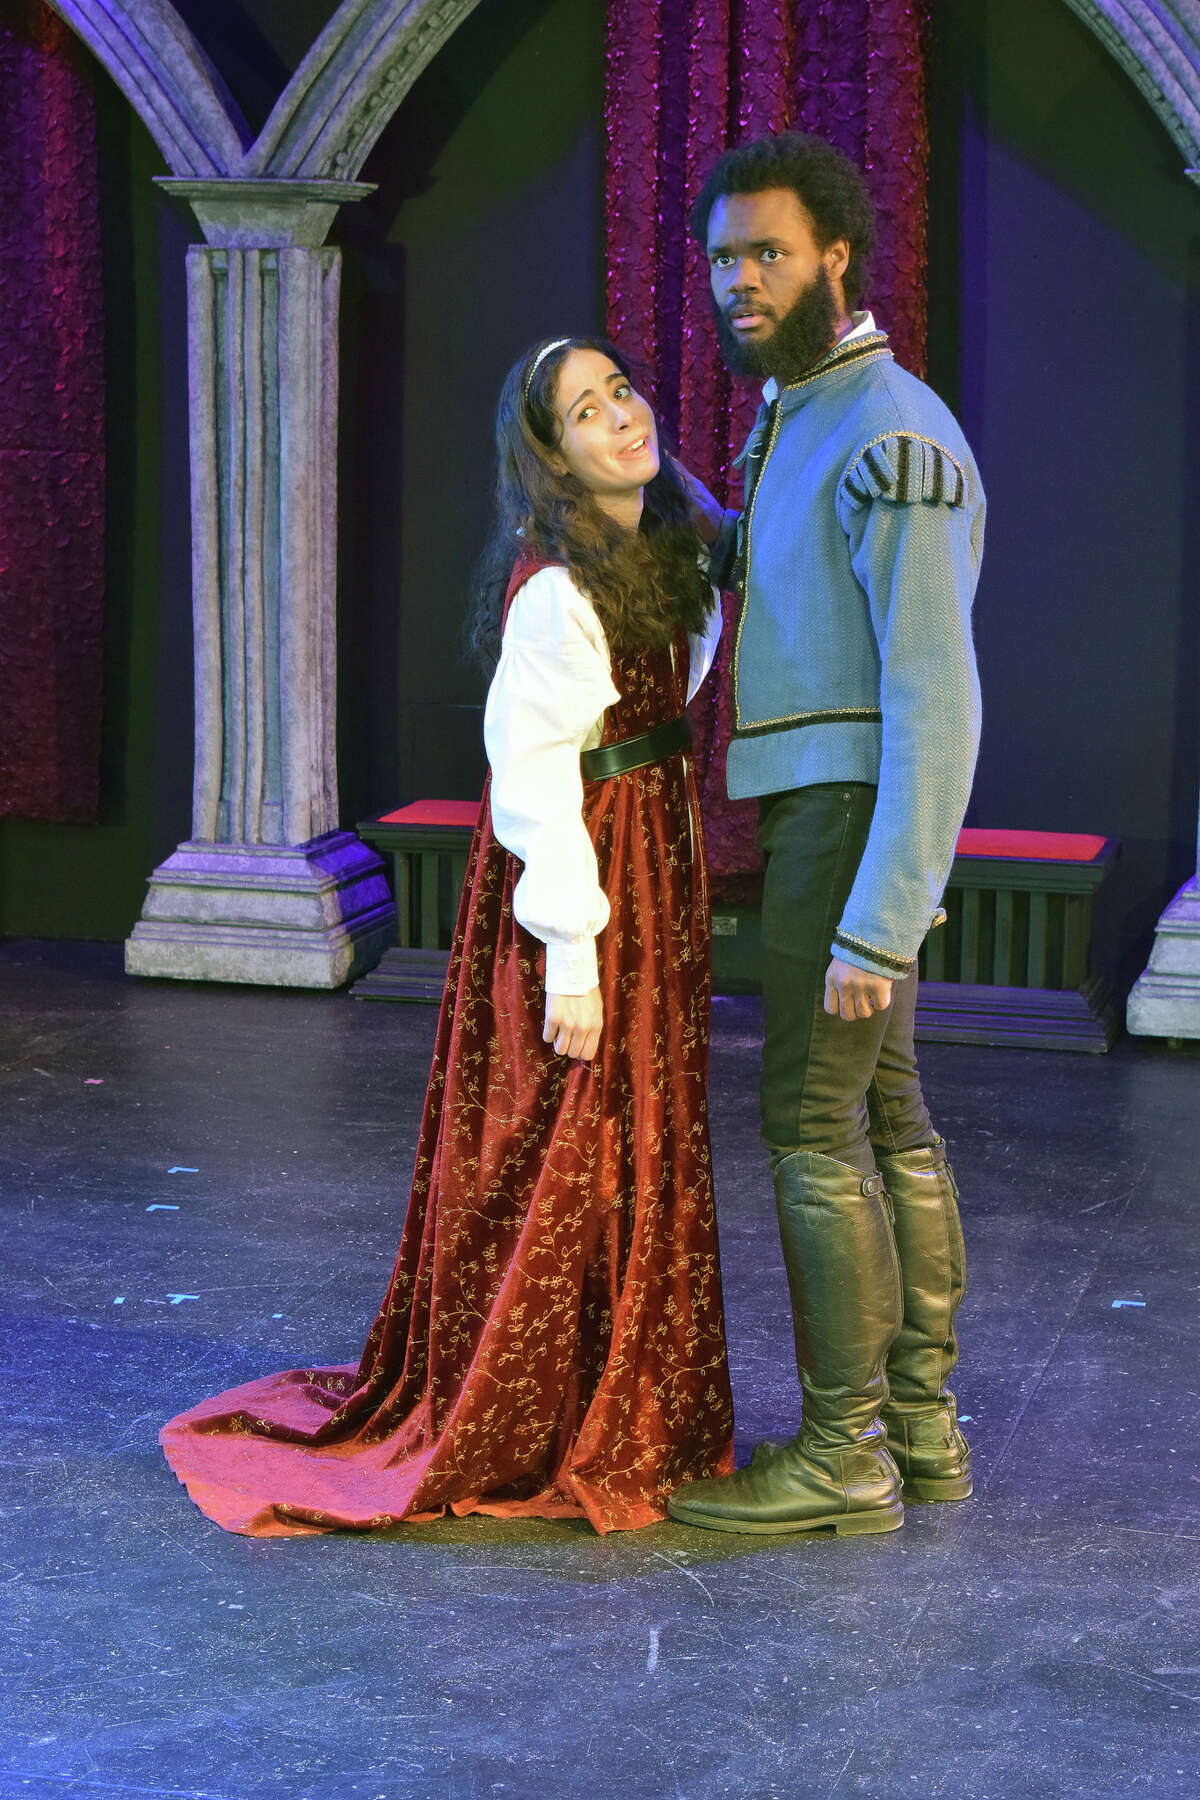 """Emily Díaz (as Juliet) and Devante Owens (as Romeo) in Northeast Regional Tour of Shakespeare's """"Shakespeare and the Language that Shaped a World."""" Photo by: Katie McKellick"""